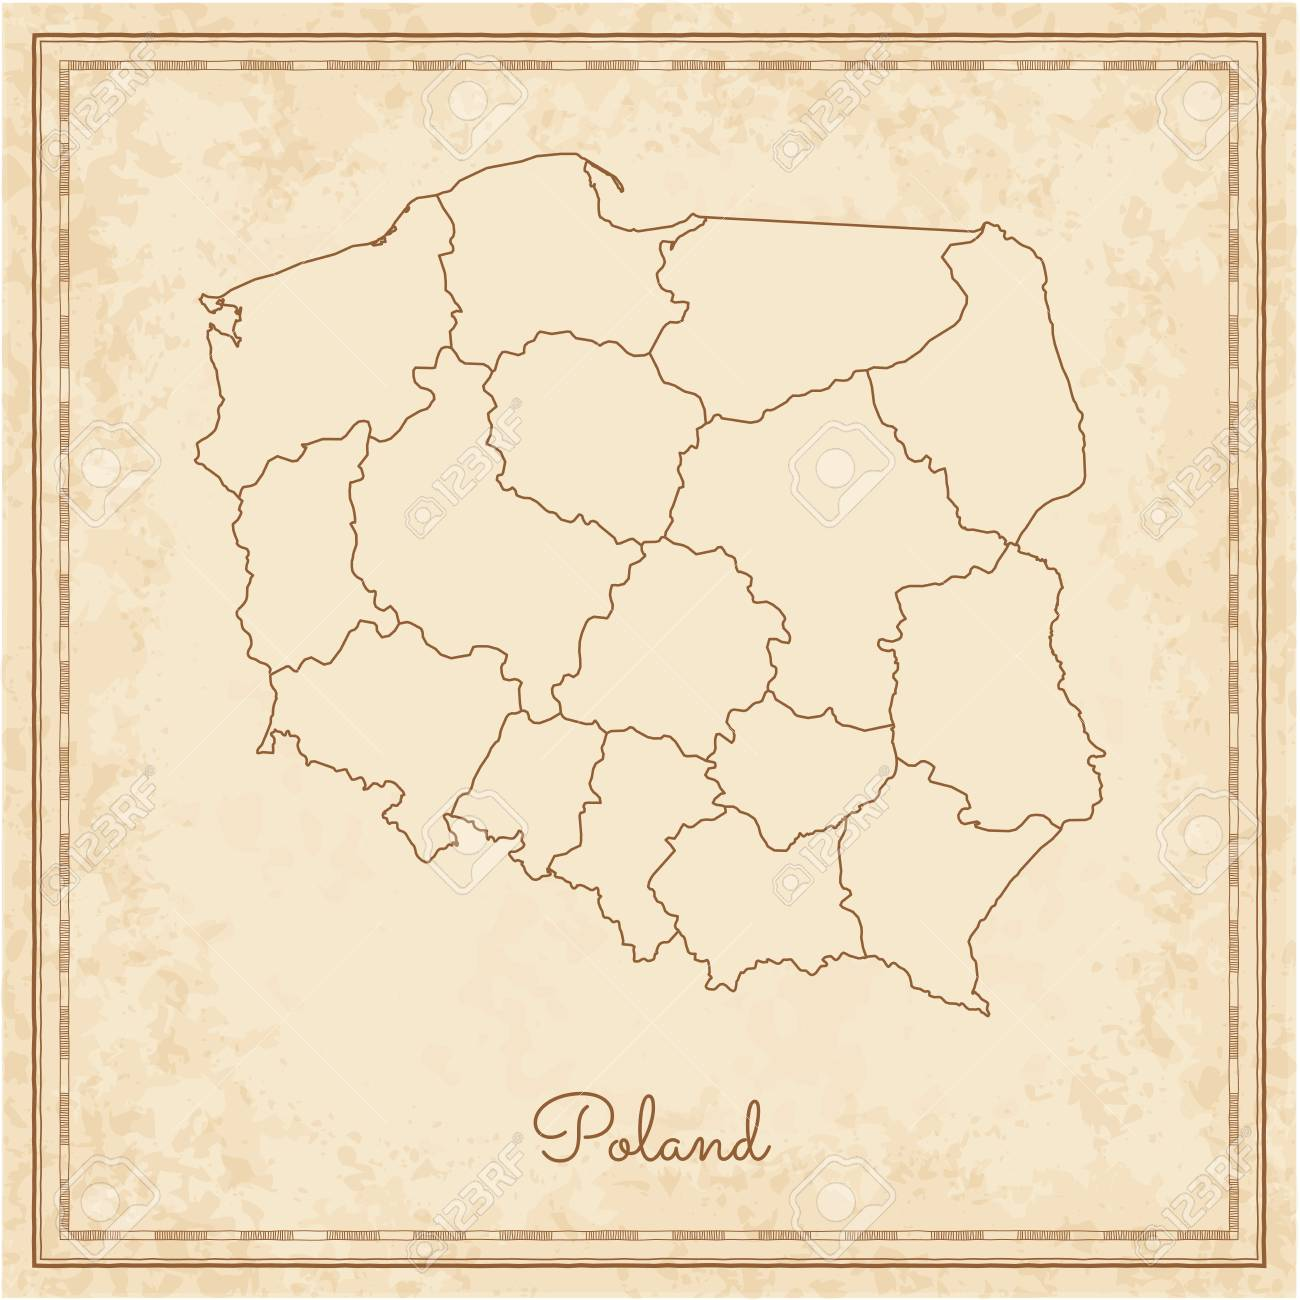 Poland Region Map Stylized Old Pirate Parchment Imitation Detailed